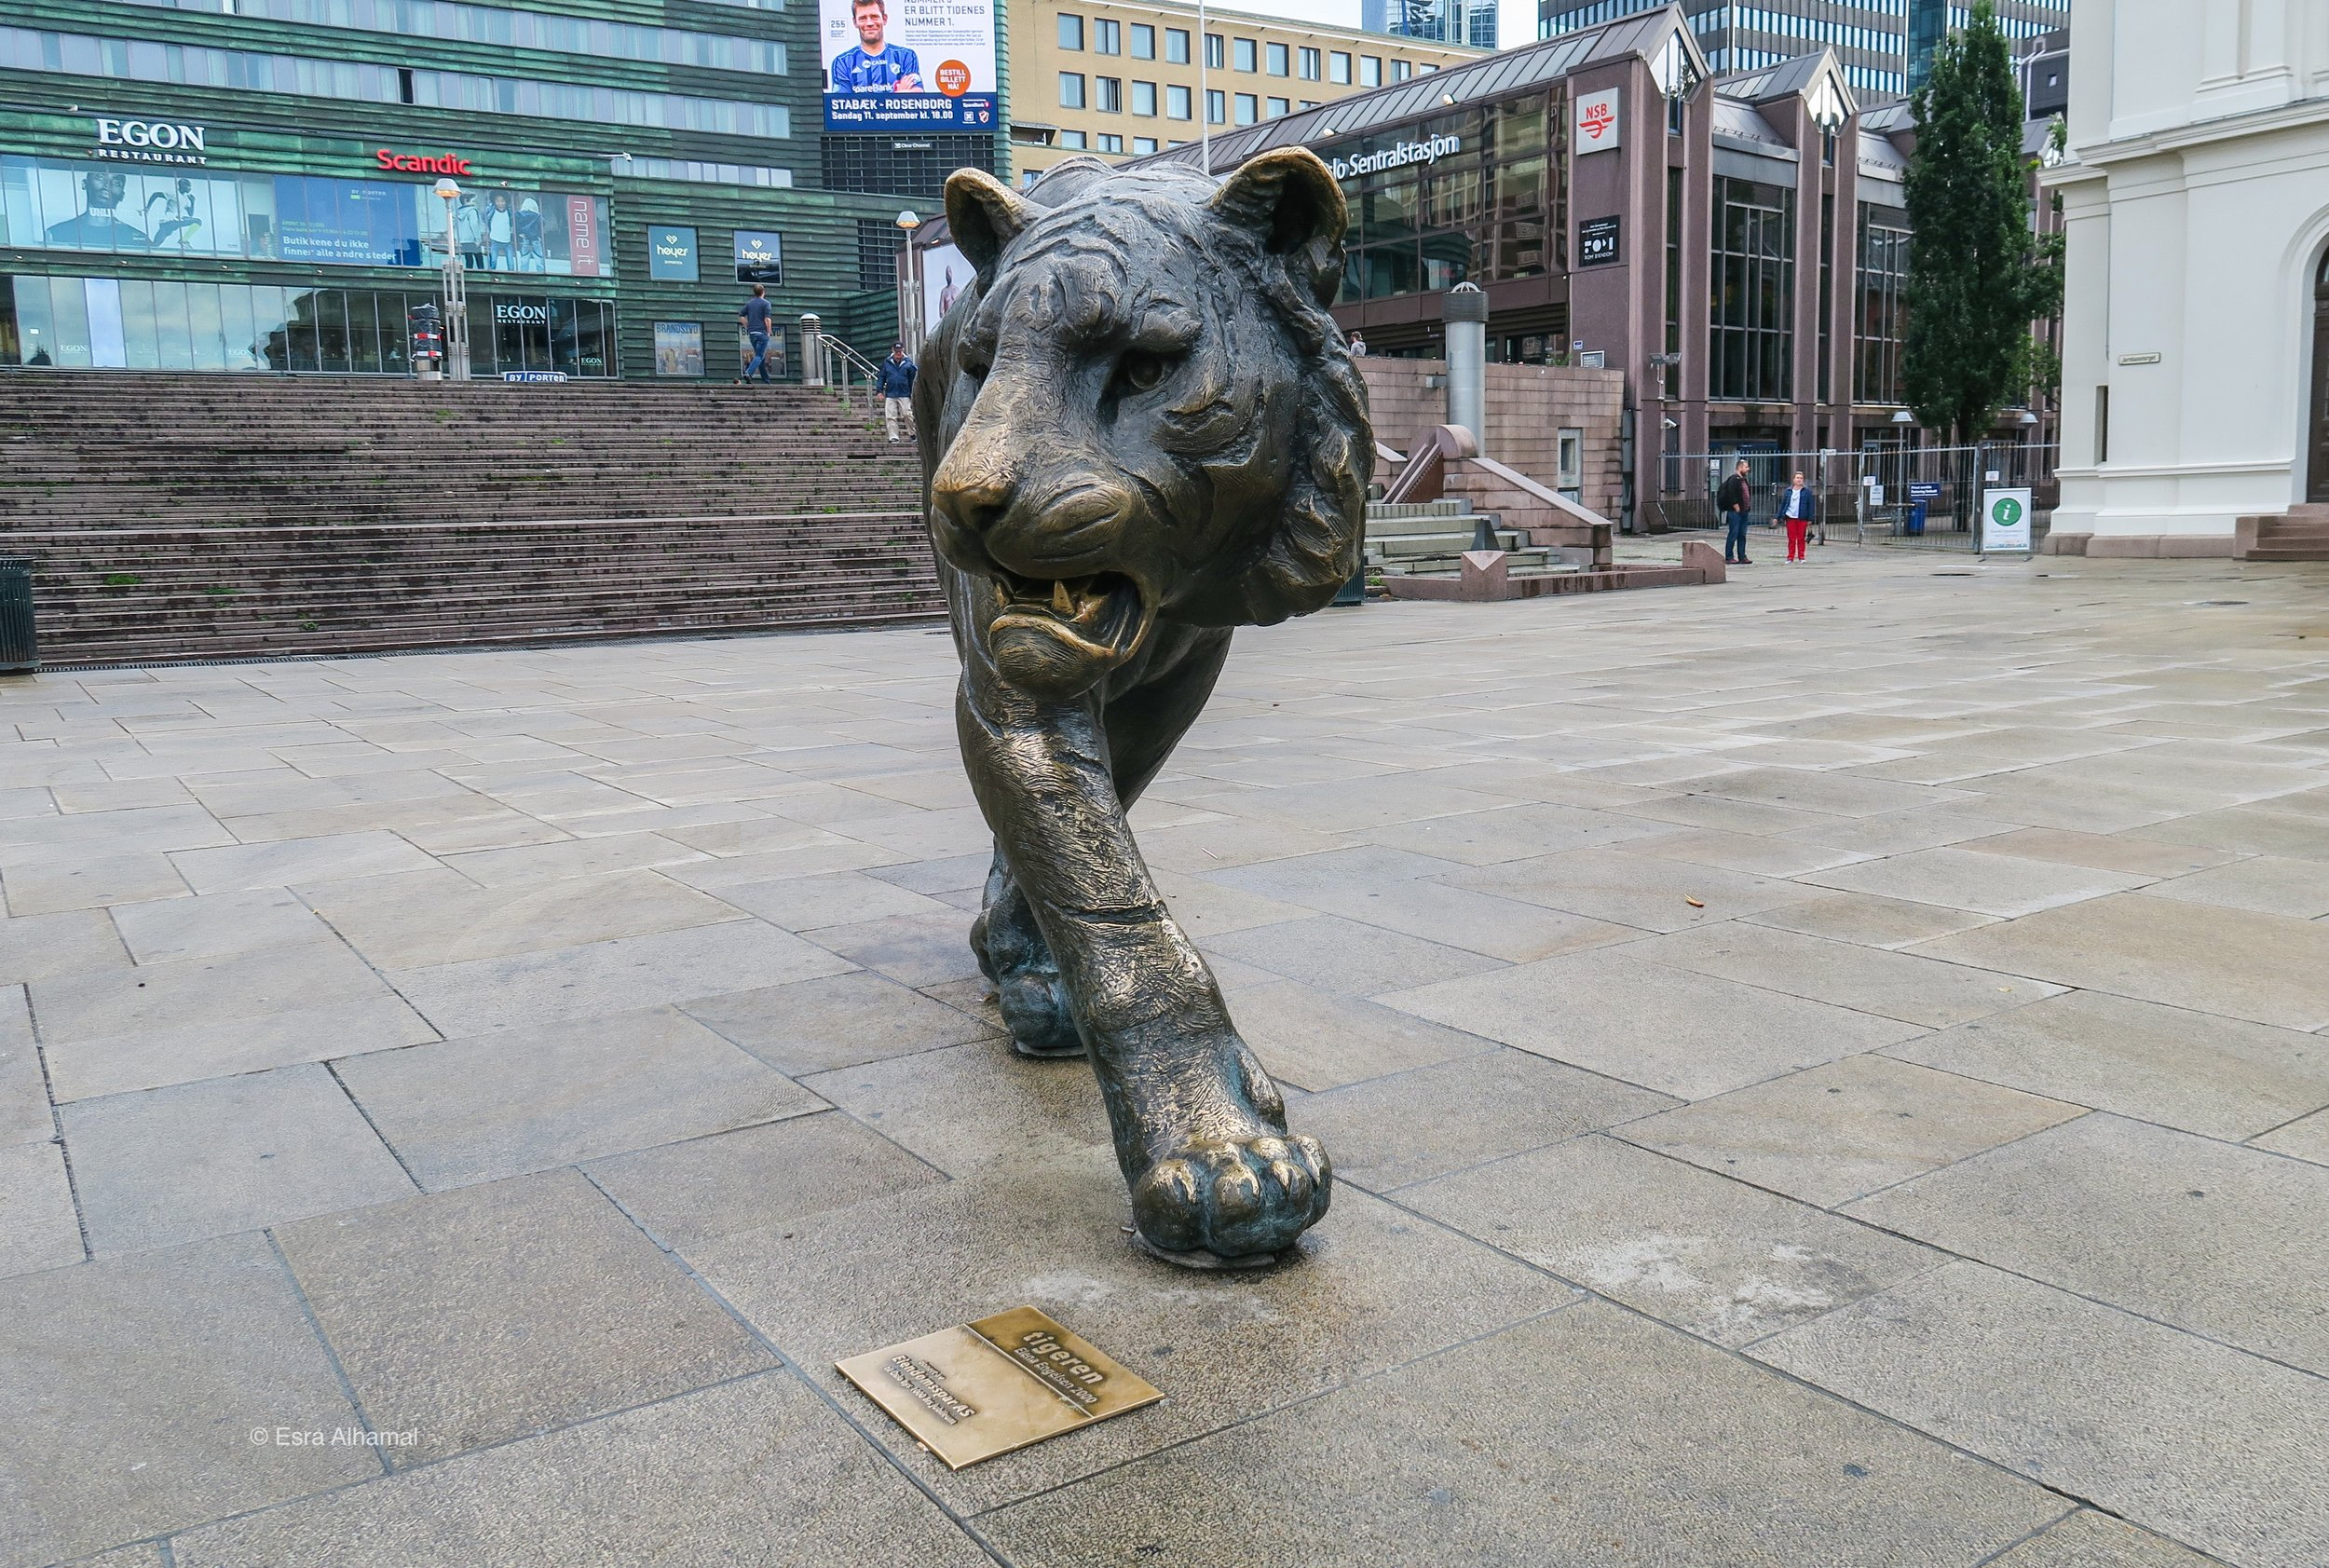 The tiger of Oslo